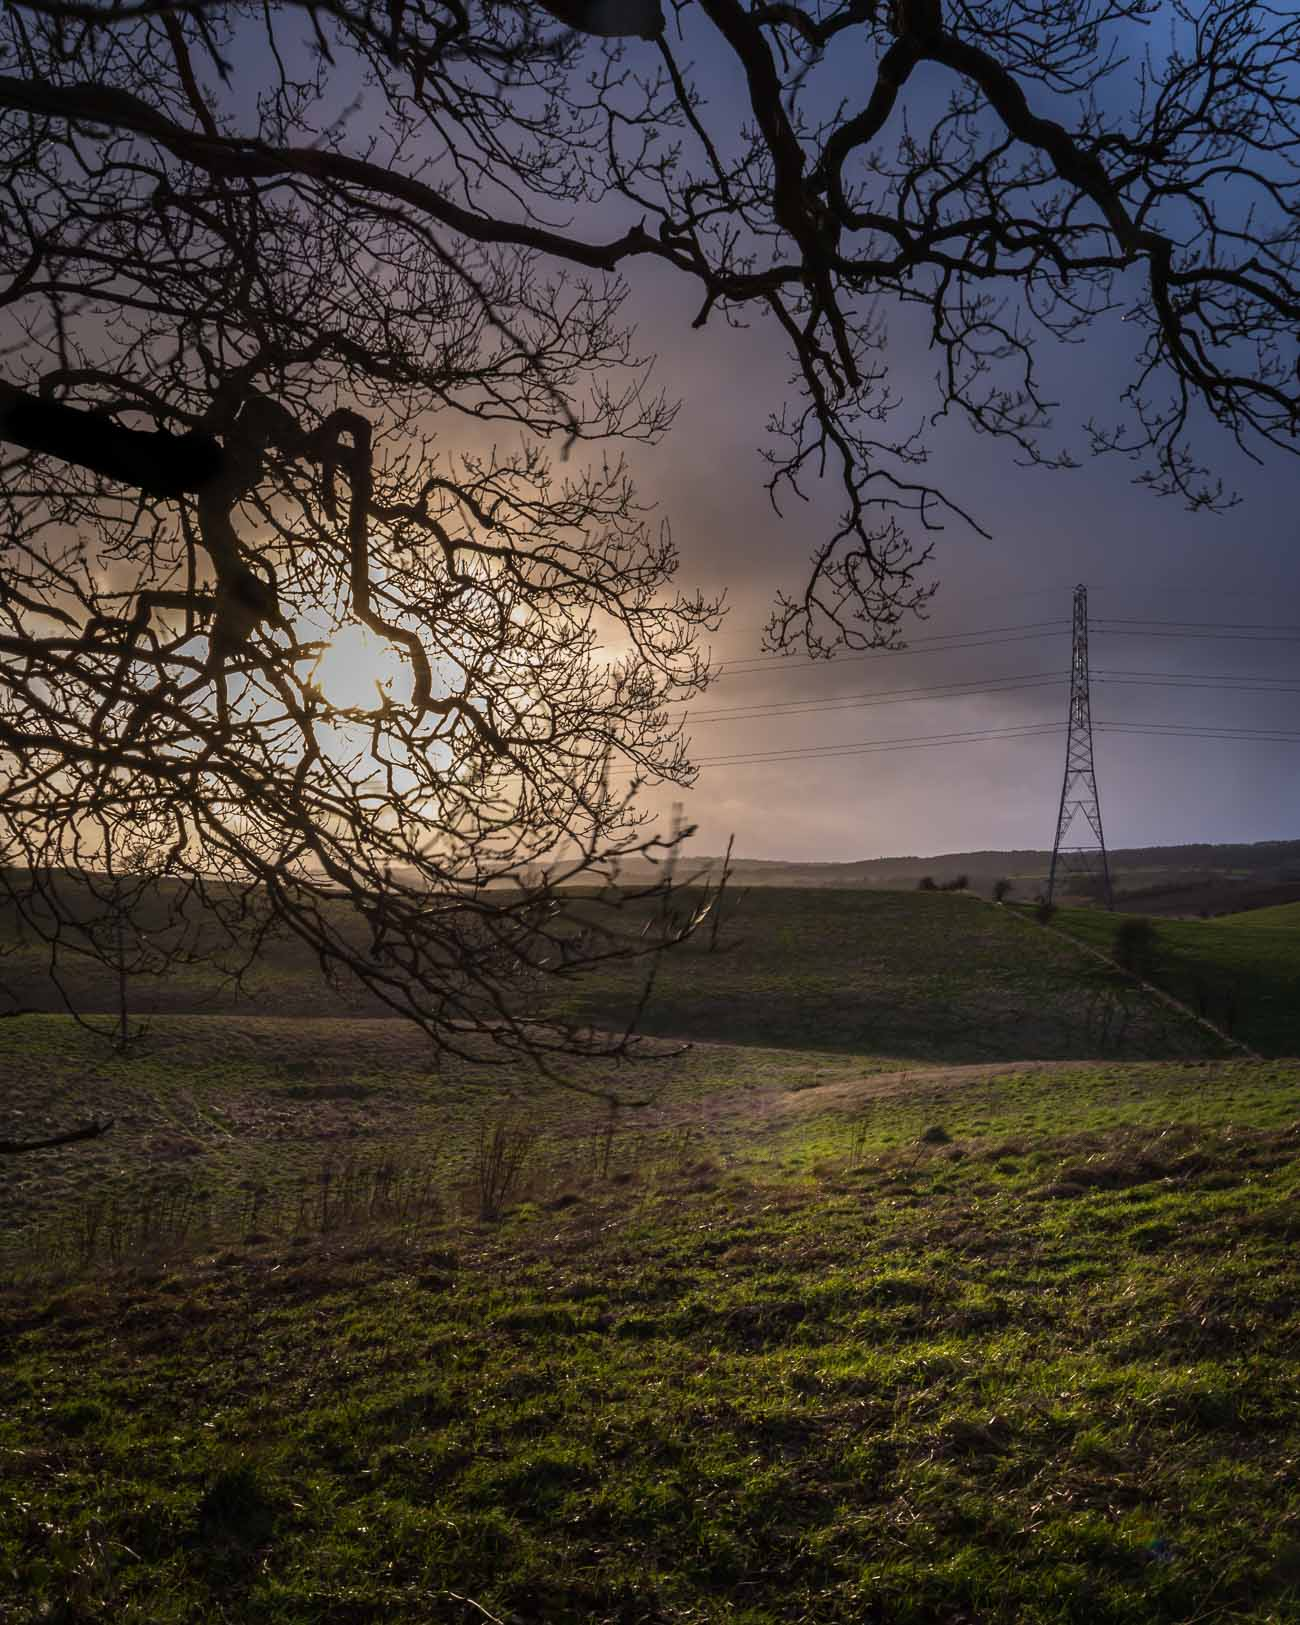 A Black Country Sunset at Bunkers Hill Woods